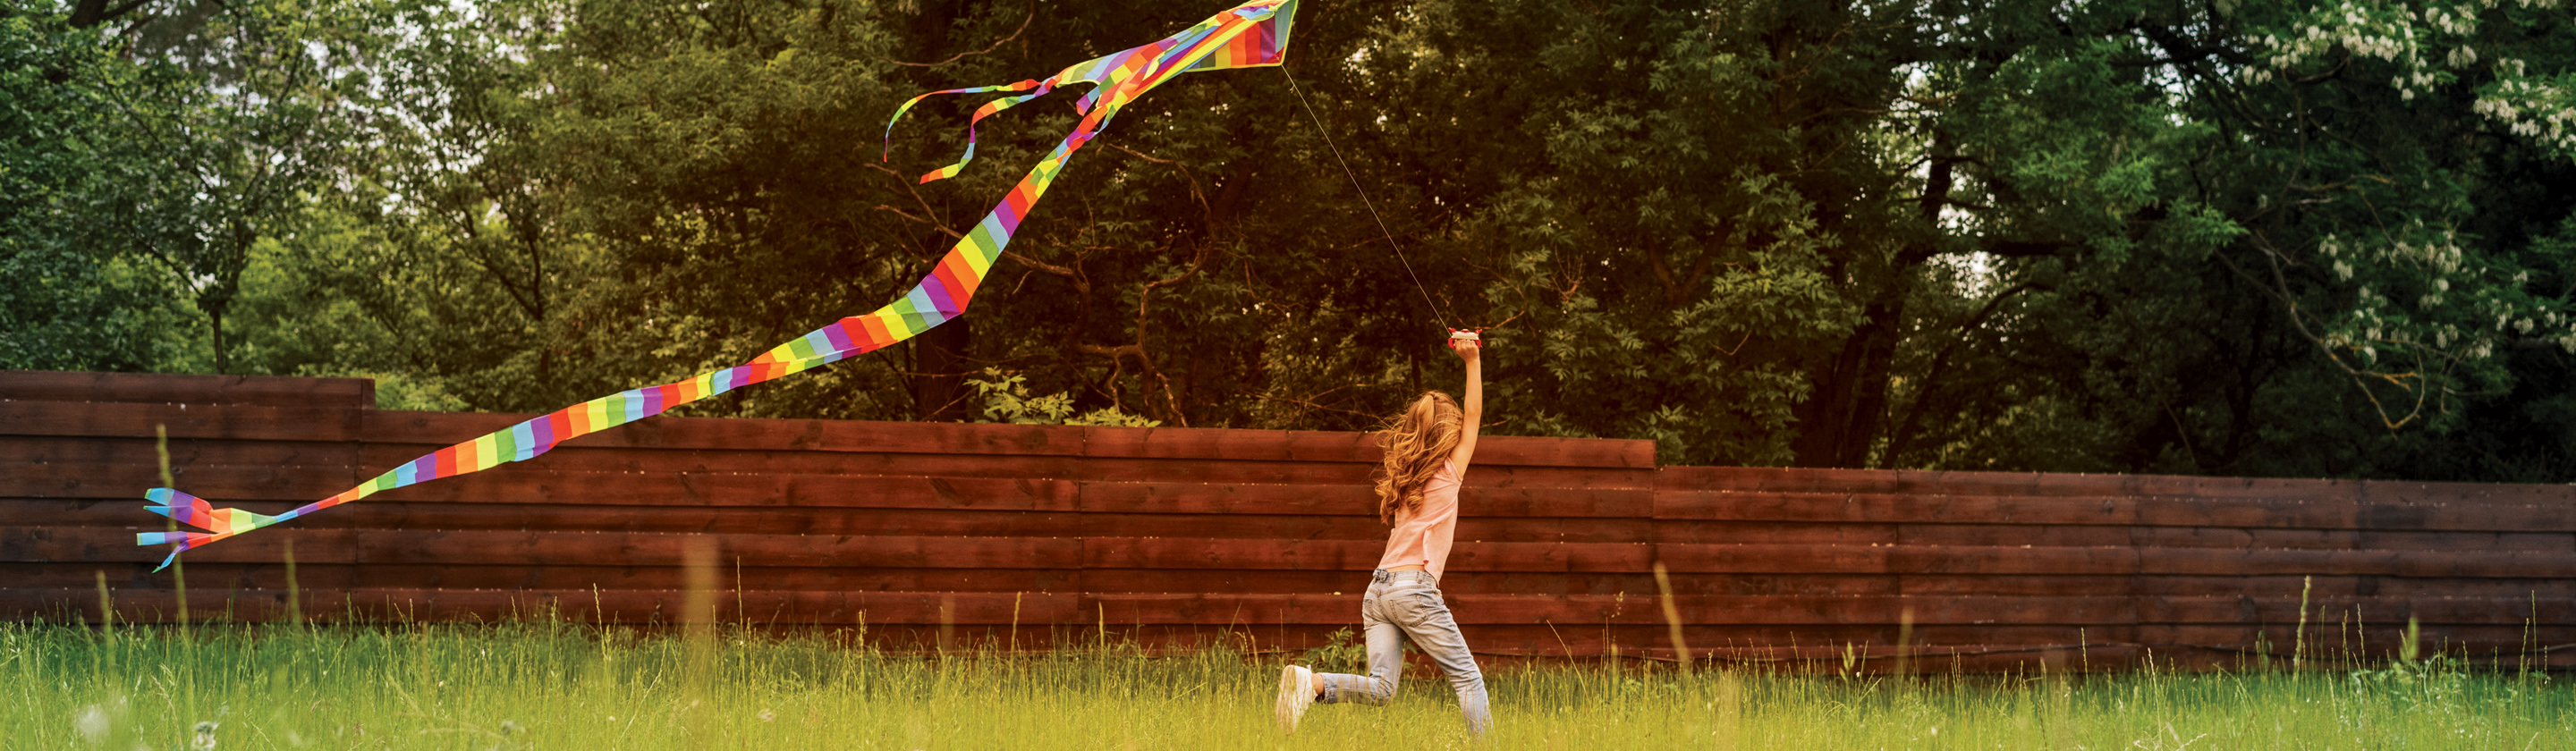 Girl with the kite